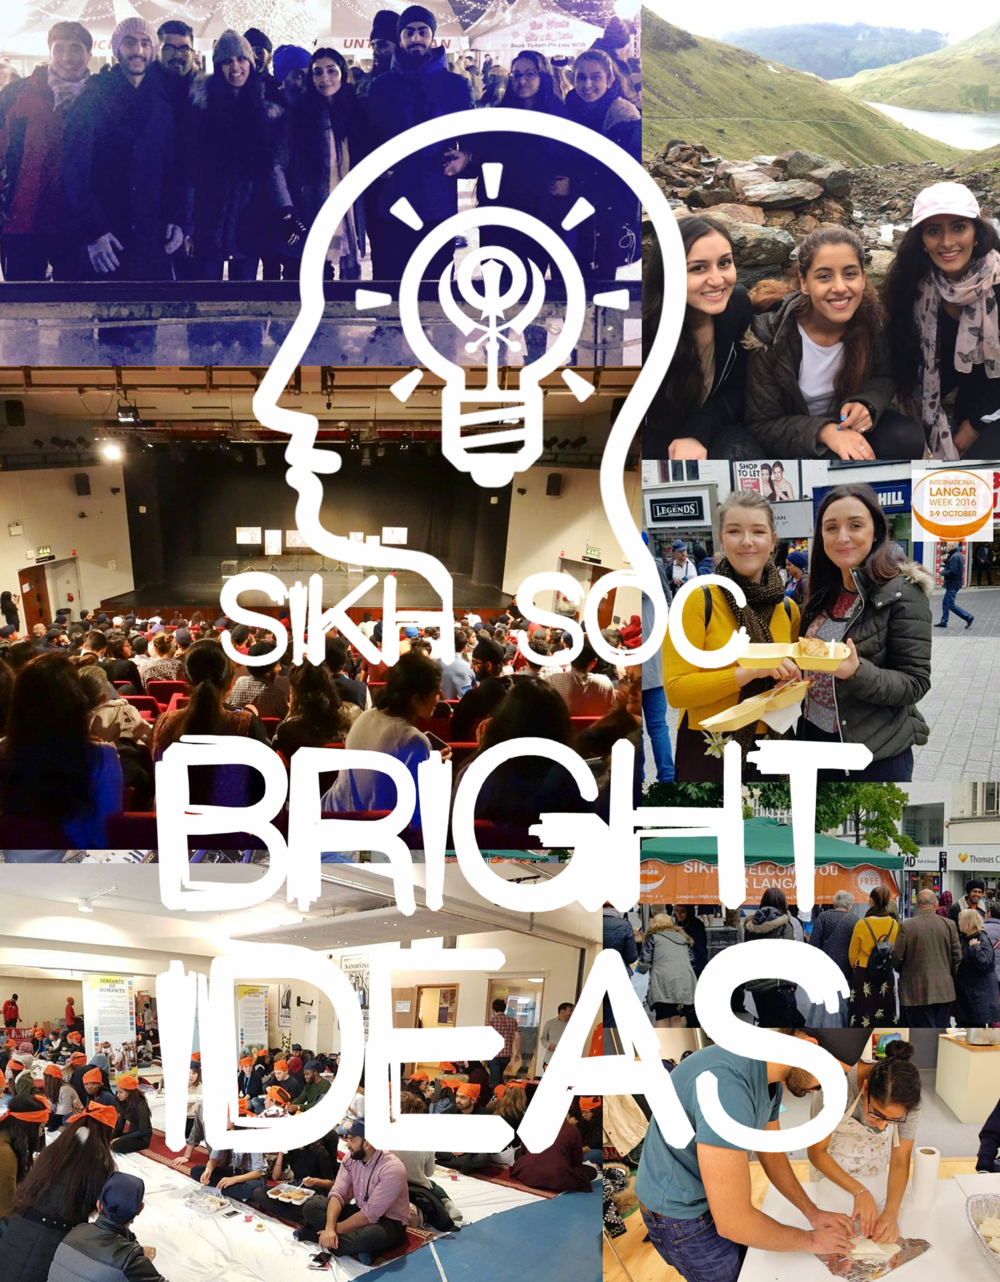 Bright Ideas Sikh Soc Bright Ideas is a new project from BOSS for new unexperienced Sikh Society committee members! Bright Ideas will provide a guide for planning and preparing events from previous successful Sikh Societies! If you'd like to share your experience in an event, follow the link on our page.